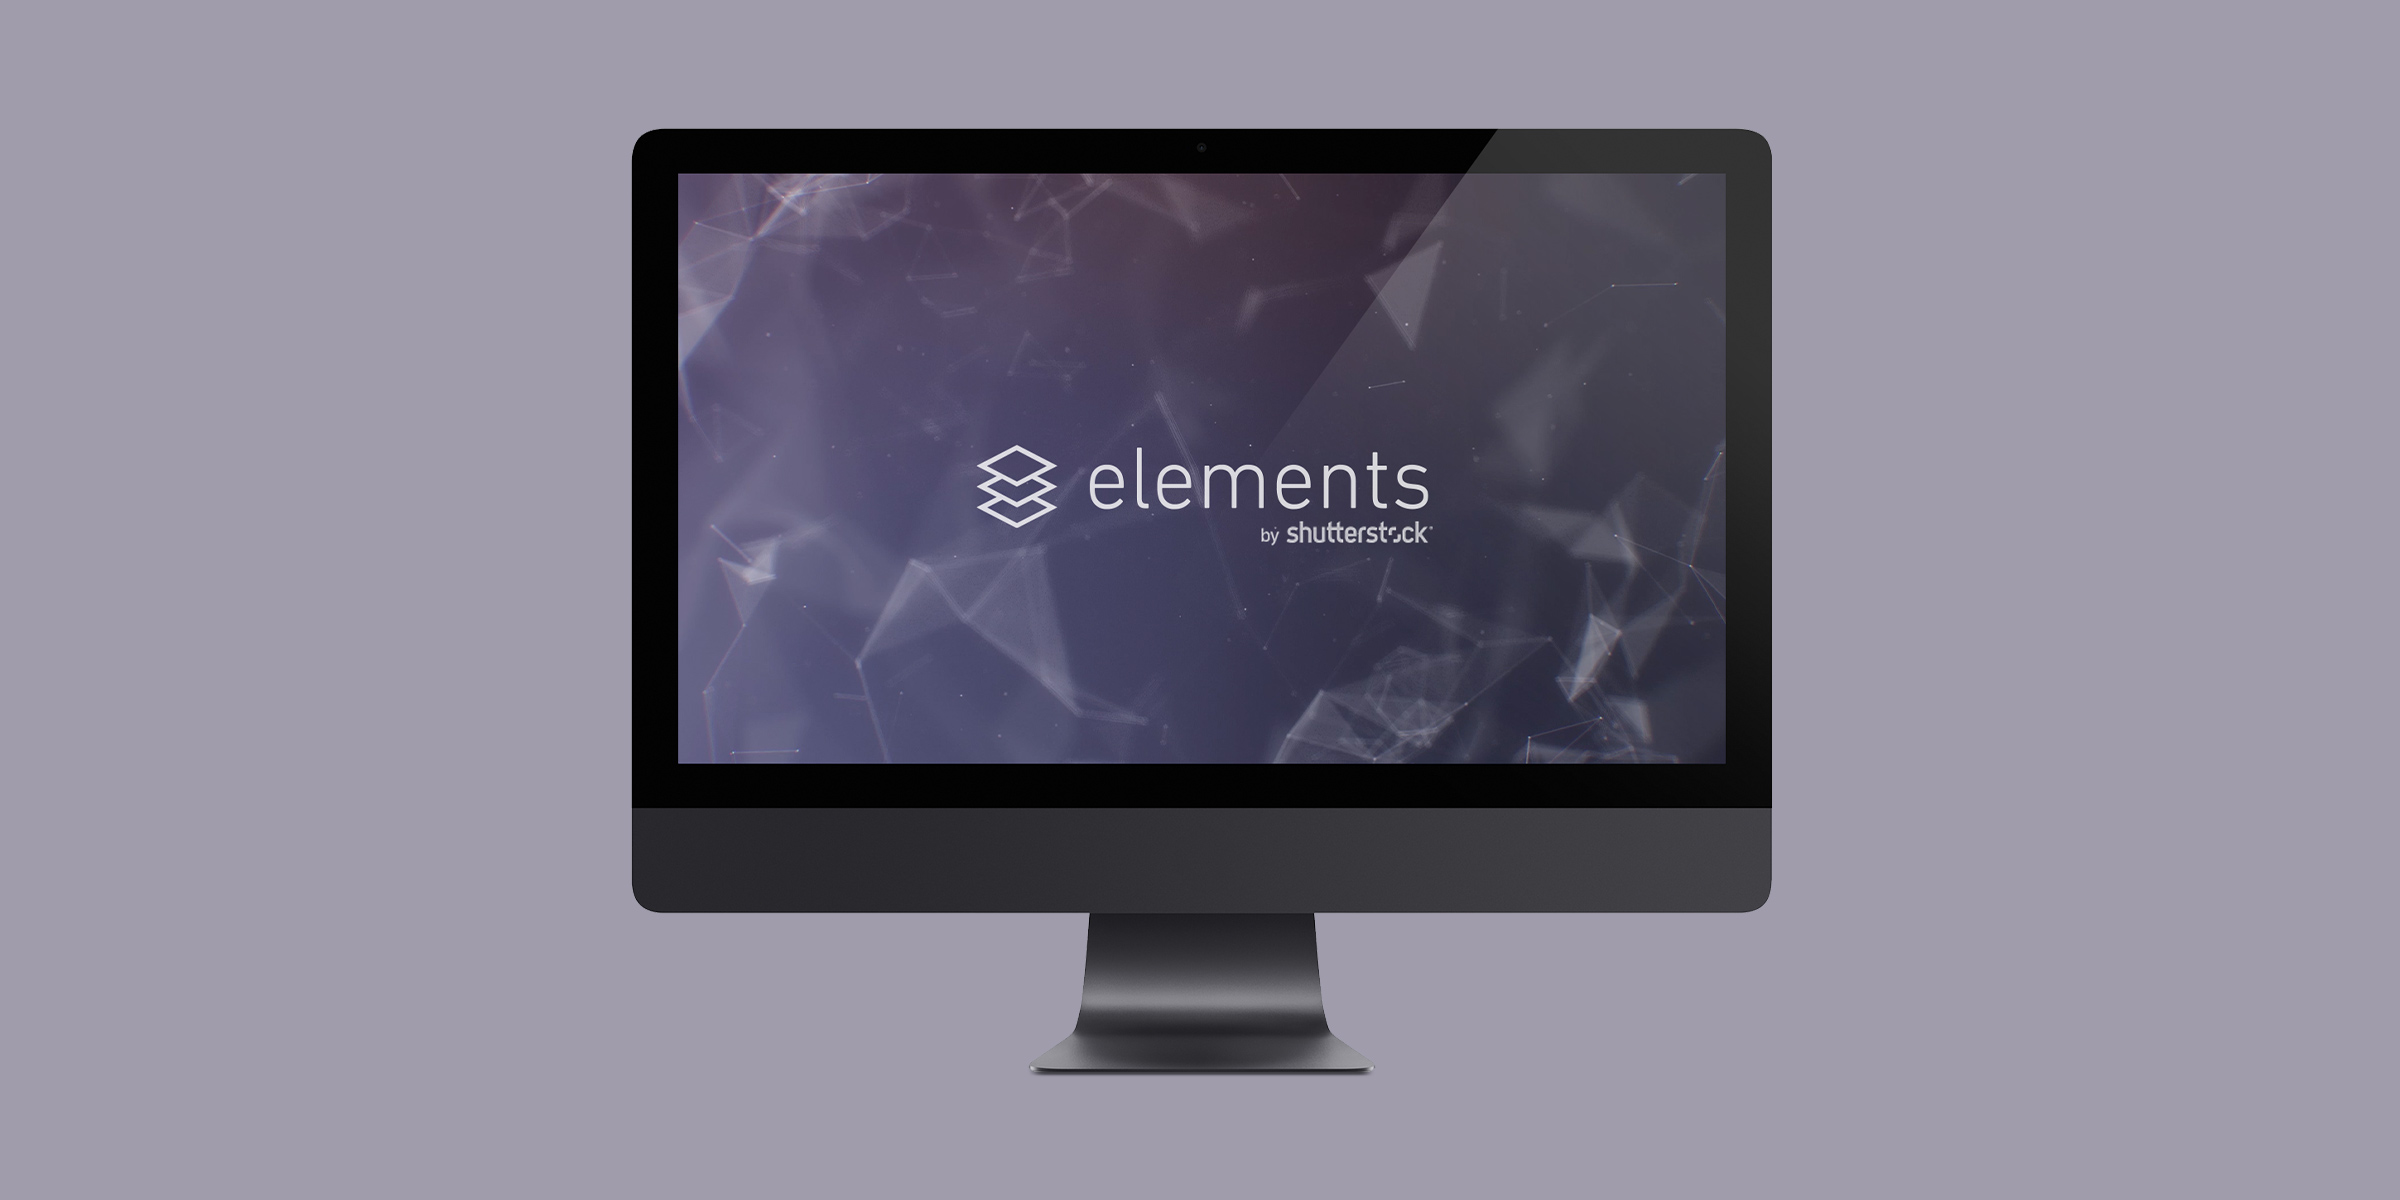 Header image for the Shutterstock Elements project, representing an iMac display on a dark mauve background, with a white Elements logo floating on a mauve, abstract background on screen.